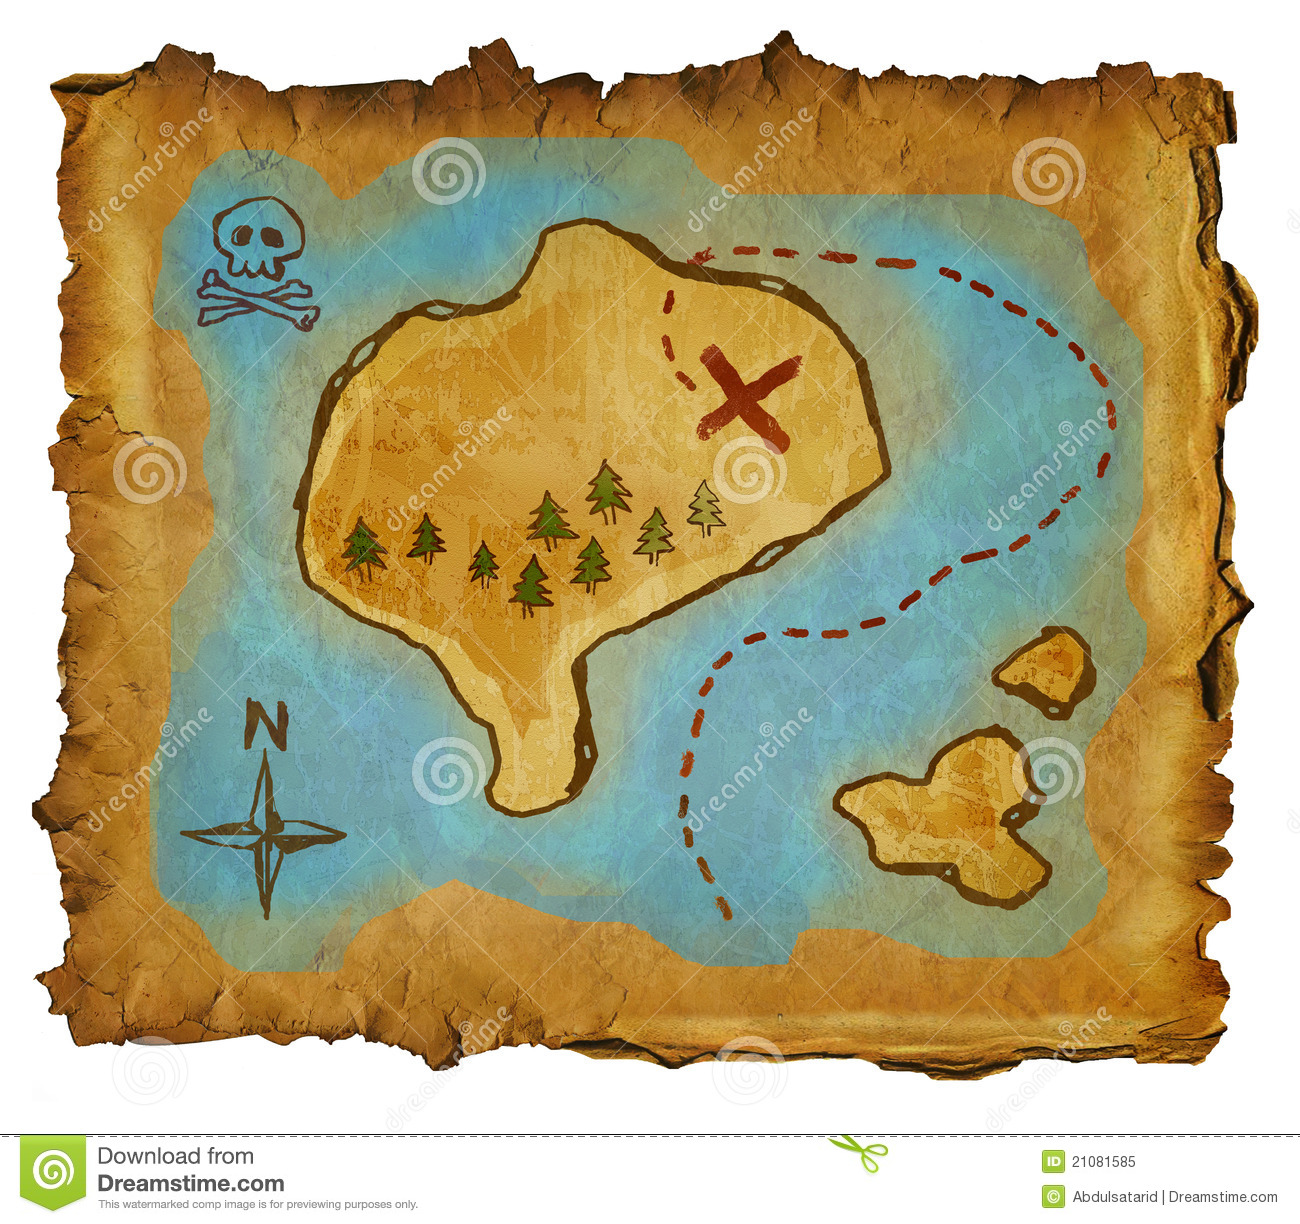 Pirate Map Royalty Free Stock Photo - Image: 21081585